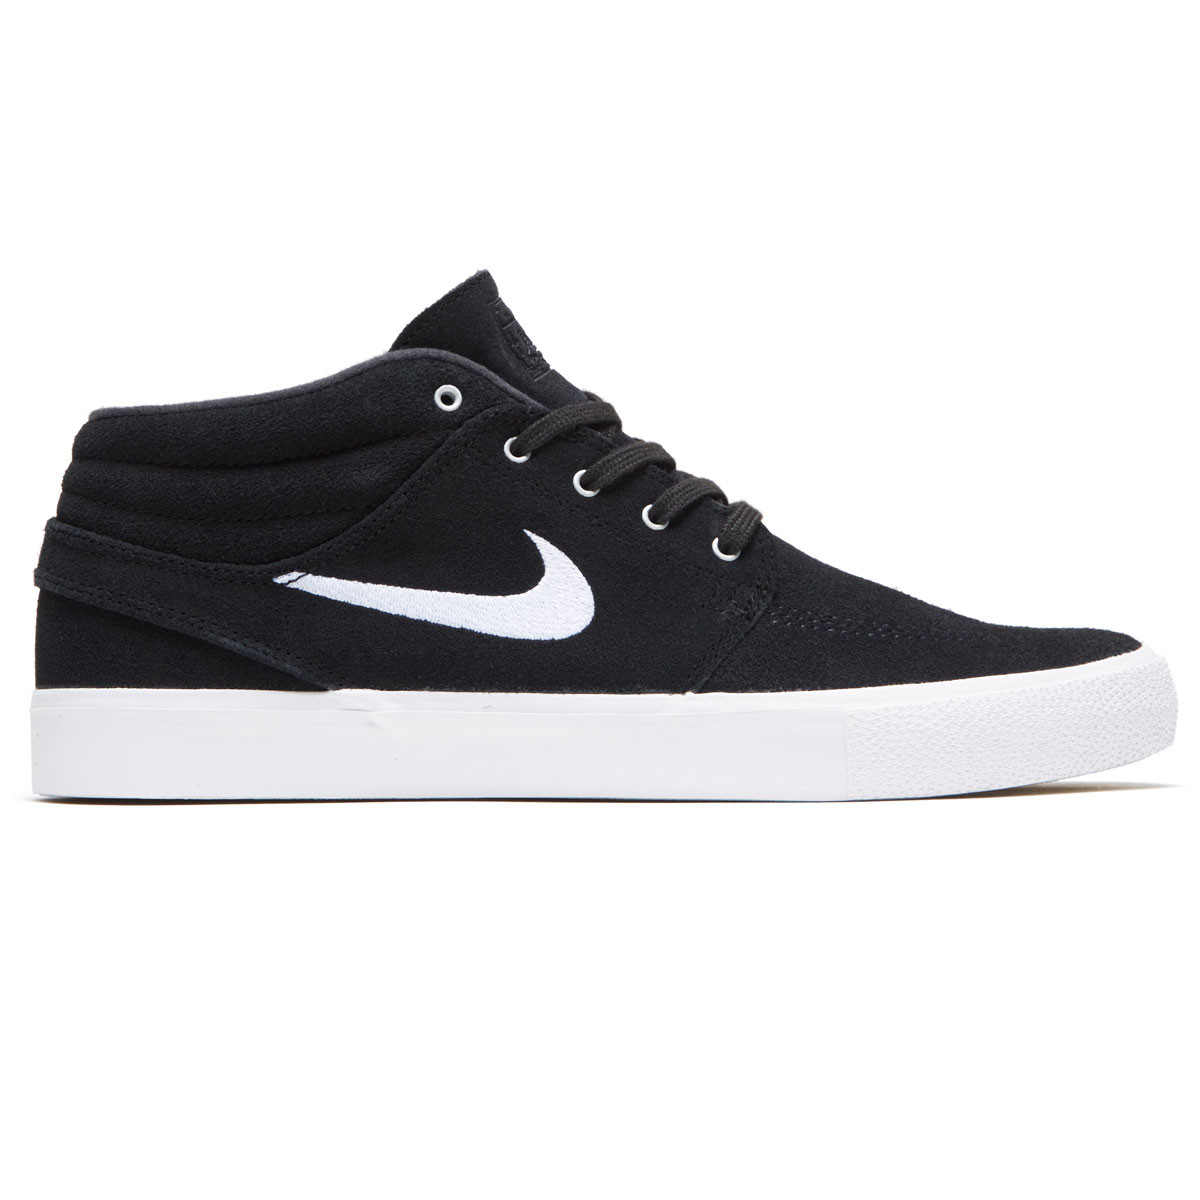 newest collection 4f1d6 7eb3f Nike SB Zoom Janoski Mid RM Shoes - Black White Gum Light Brown -